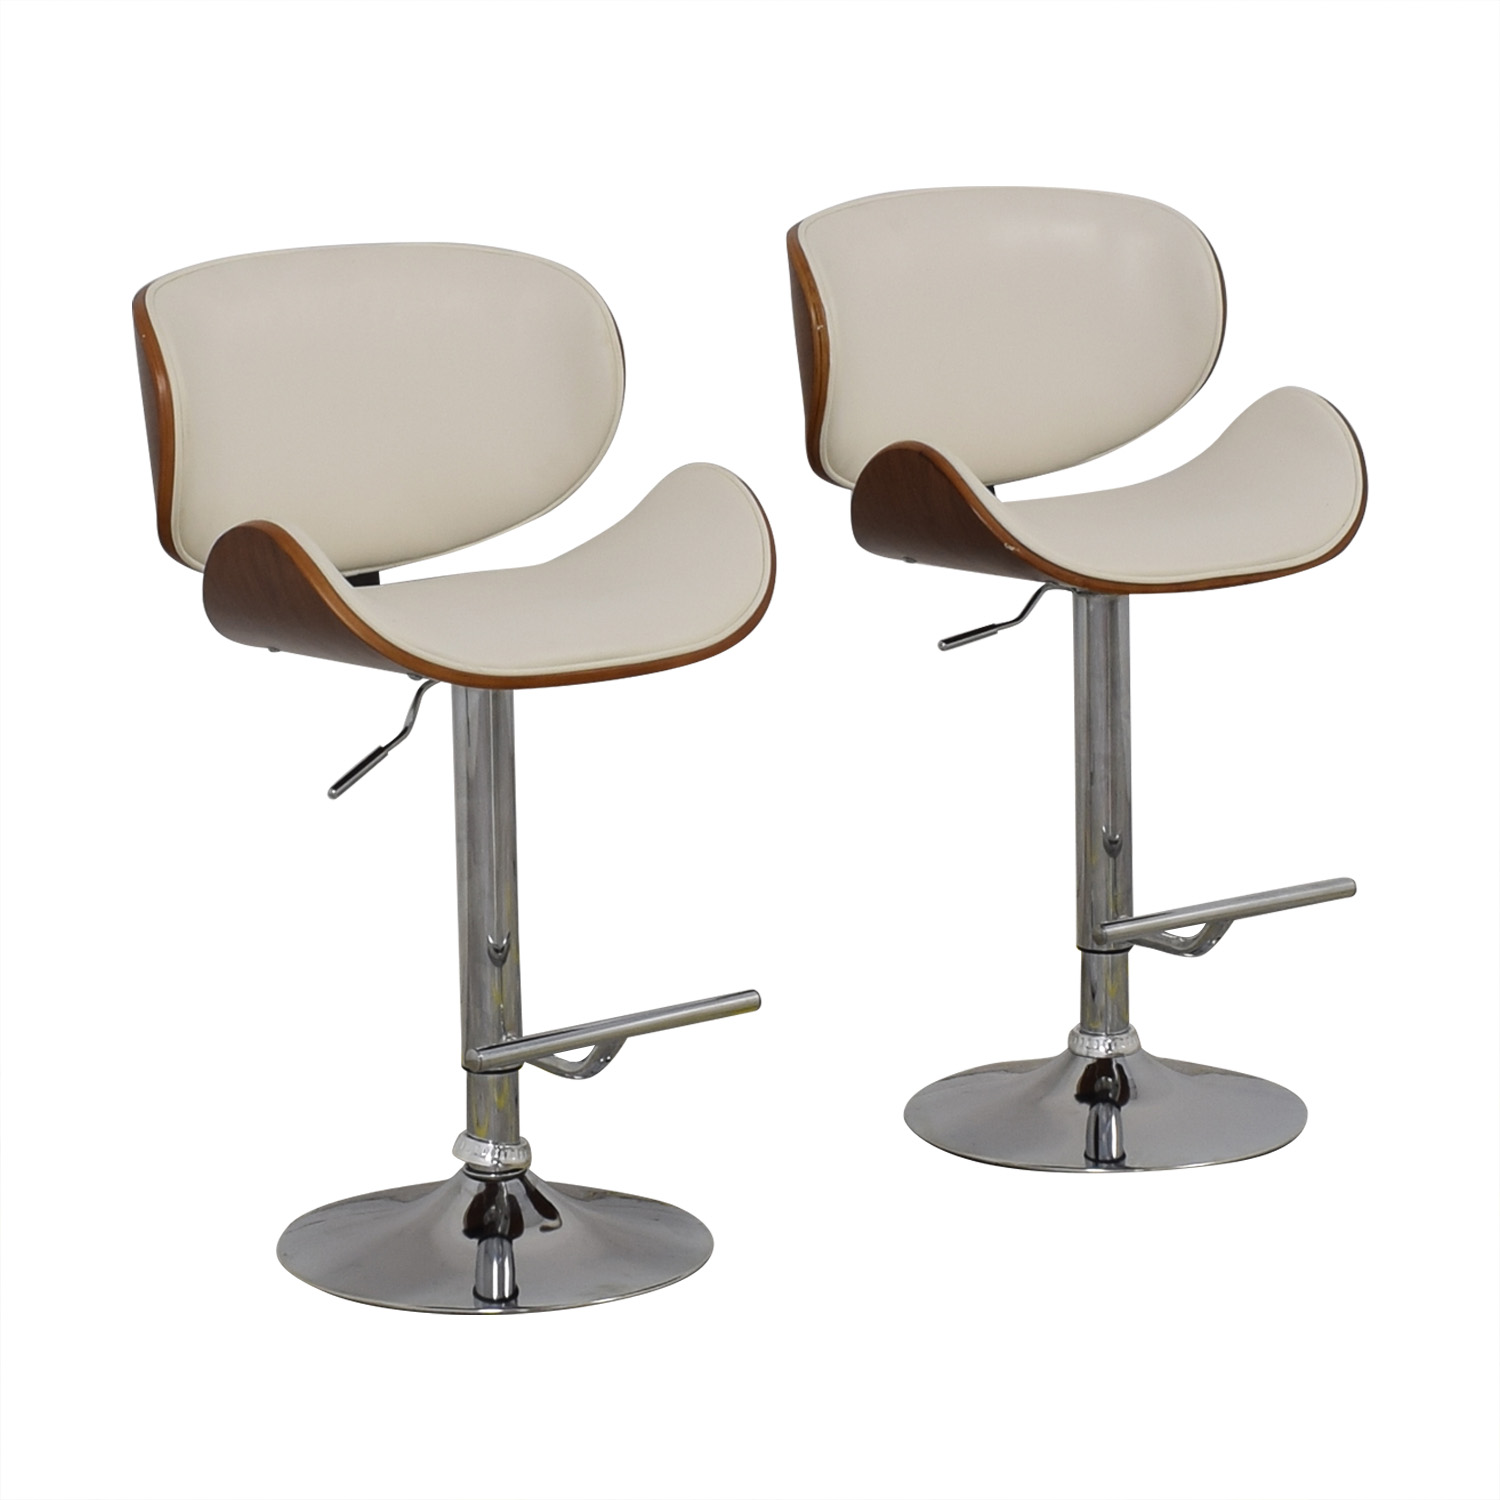 Raymour & Flanigan Raymour & Flanigan Swivel Bar Stools